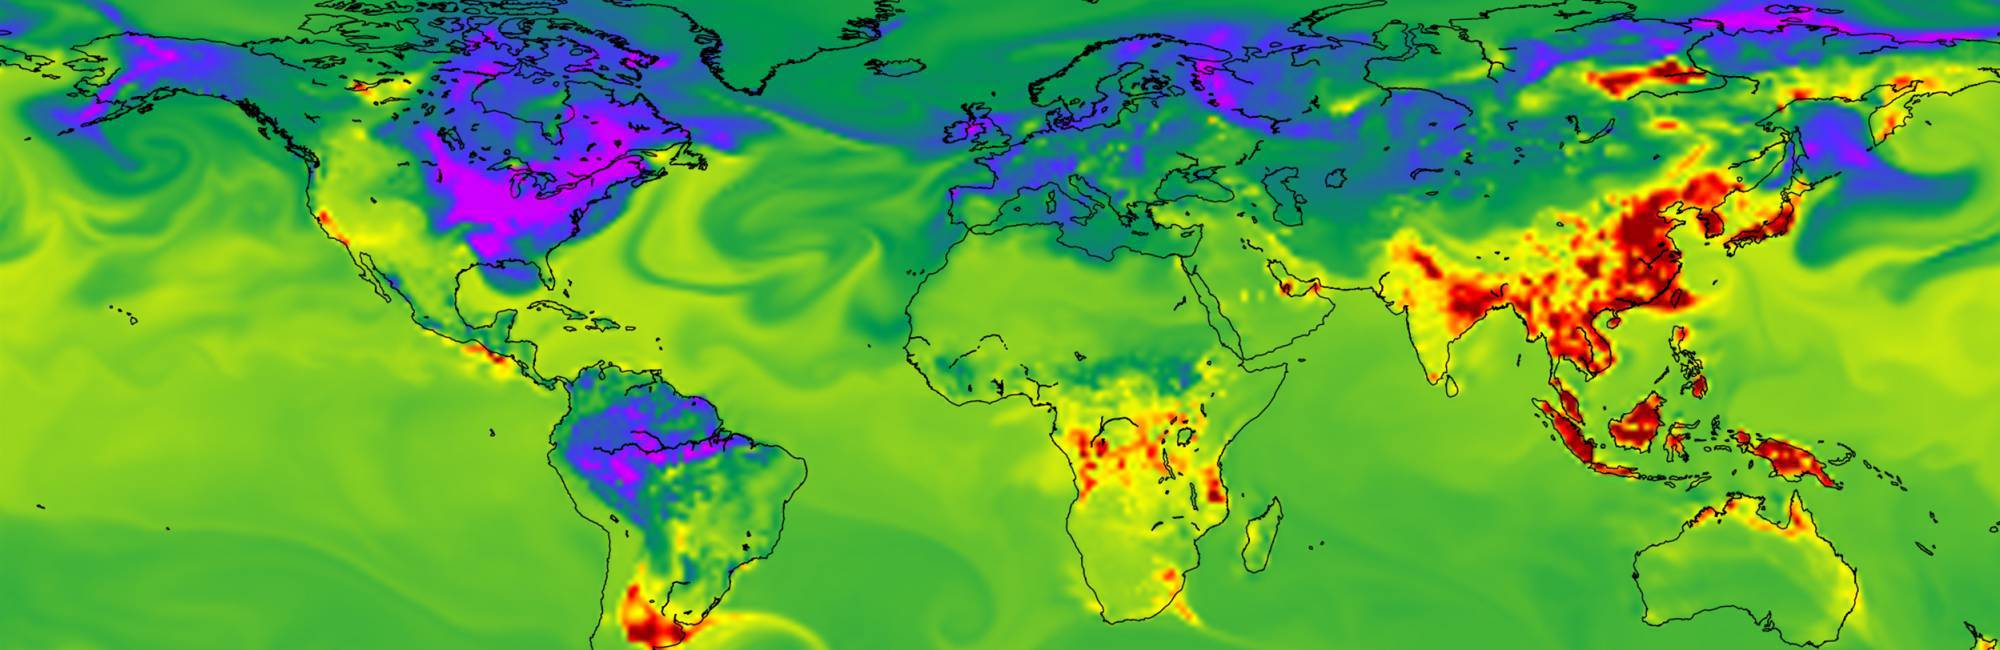 invisible swirls of carbon dioxide take on brilliant colors in this NOAA view of the greenhouse gas' emissions and sinks